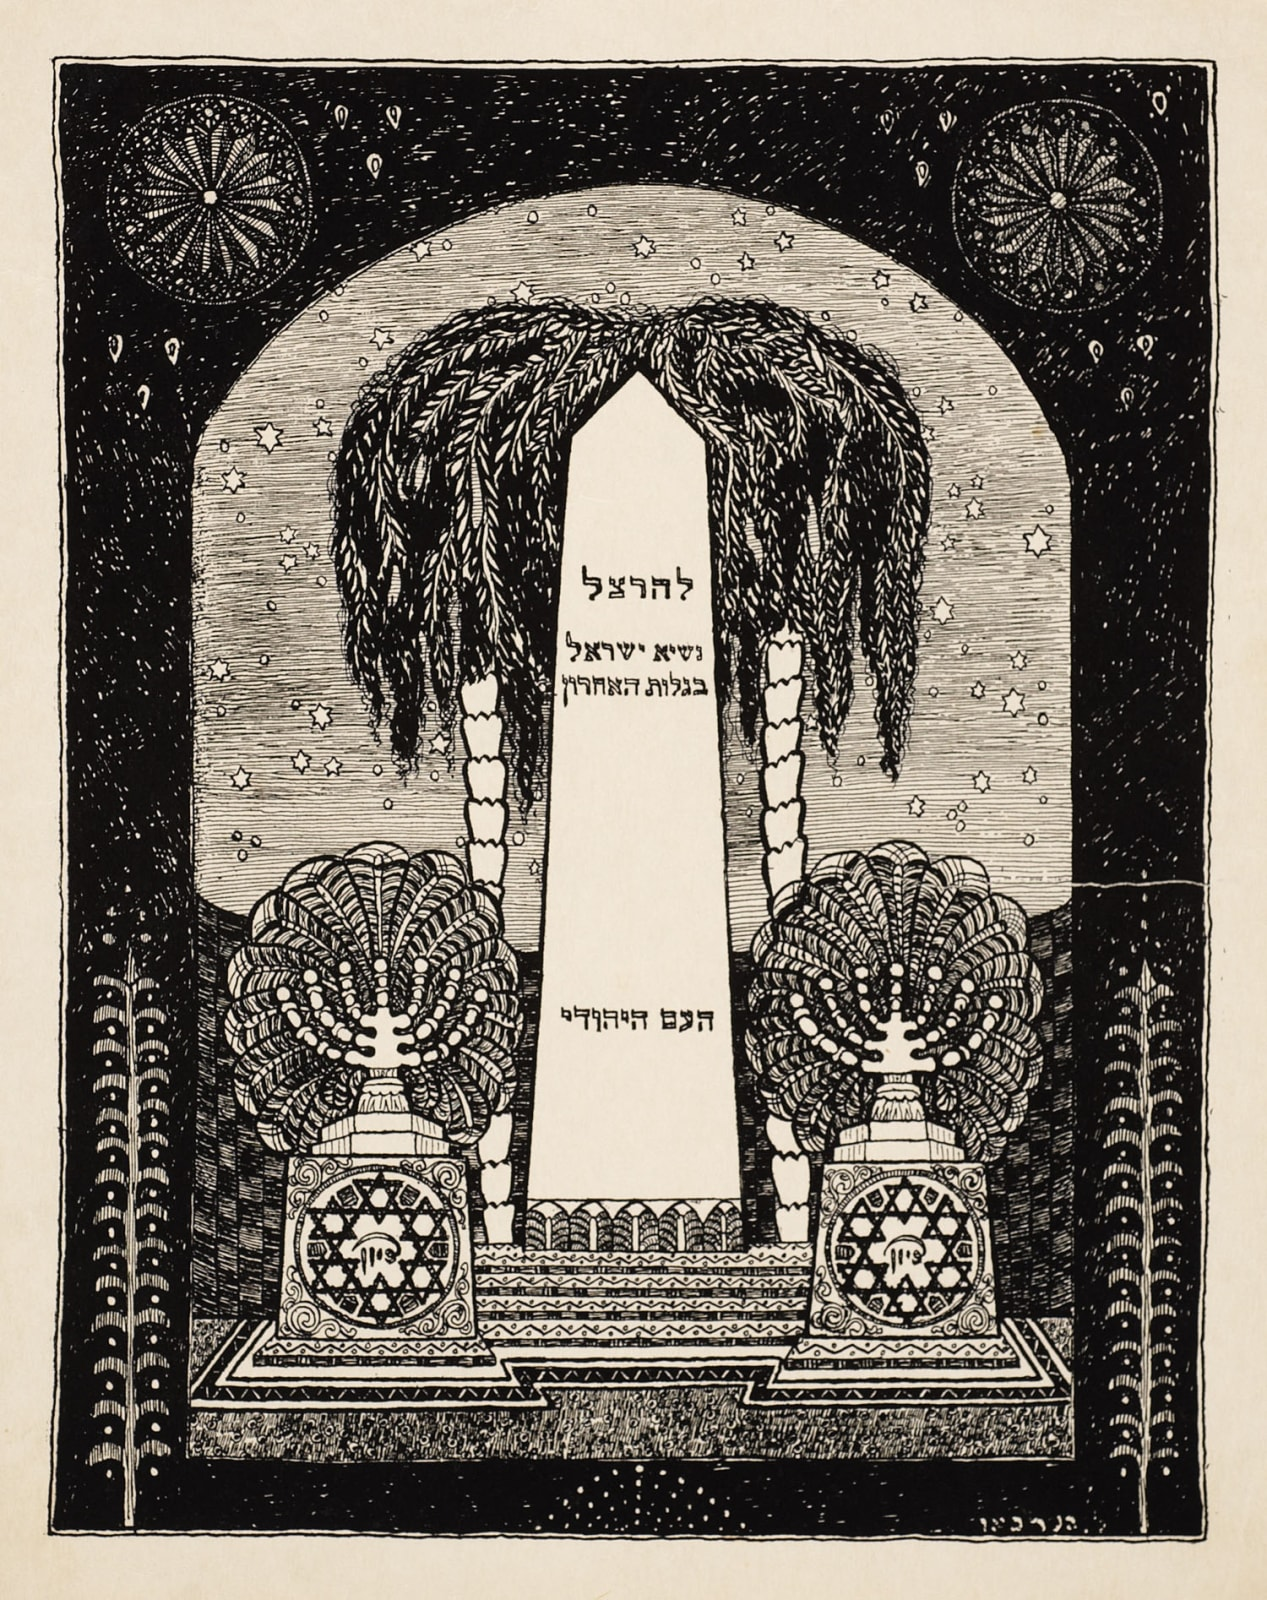 Lazar Berson (1882-1954) Ben Uri Album: natsional yidish dekorativer kunst-ferayin, noch yidishe motivn fun fargangene tsaytn (Monument to Theodor Herzl) 1916 Pen and ink on paper 32 x 26 cm Ben Uri Collection © Lazar Berson estate To see and discover more about this artist click here